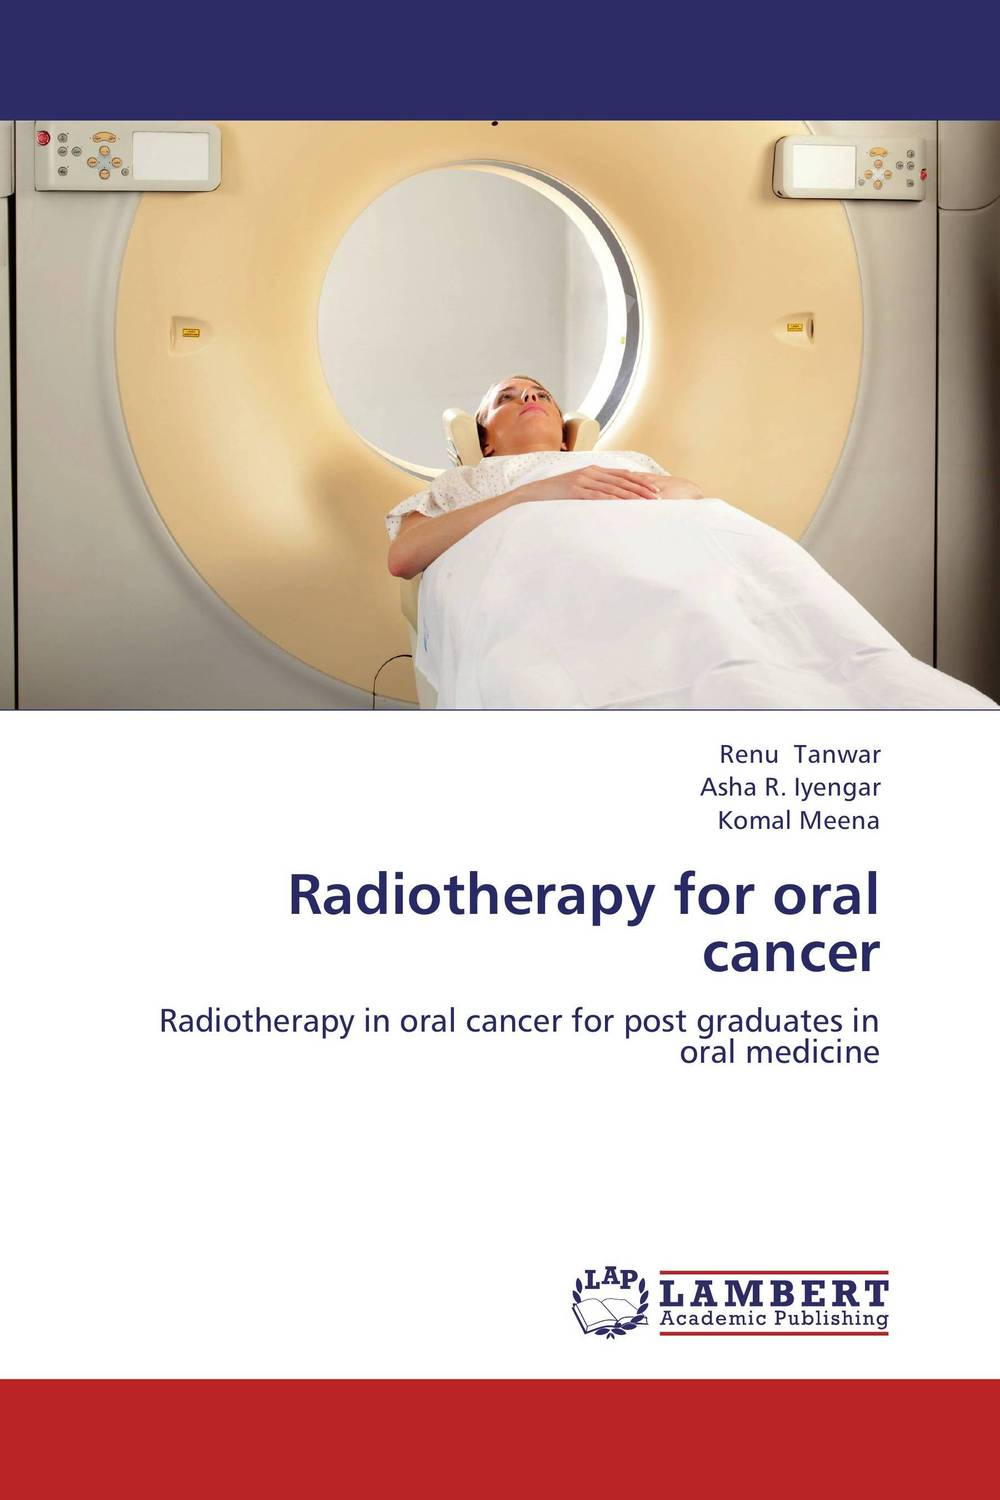 Radiotherapy for oral cancer cryosurgery in oral and maxillofacial surgery